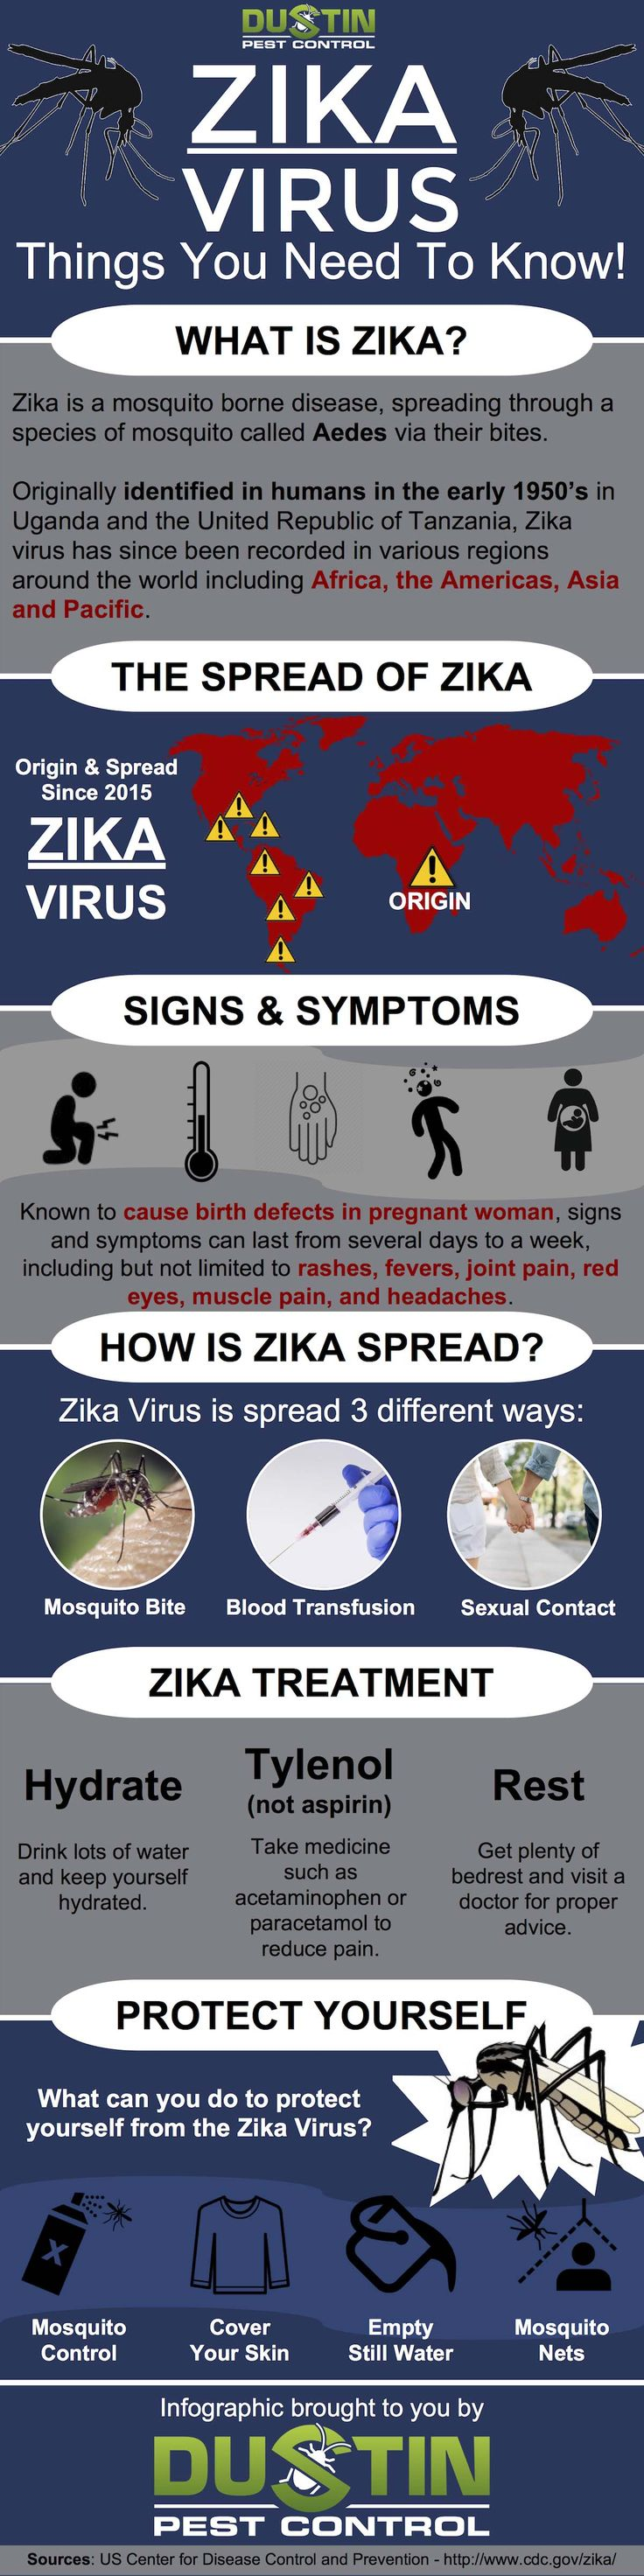 Making quite the impact across the country, the Zika virus is a relatively dangerous virus that has no particular medicine to help cure it. Primarily a mosquito born disease spreading through a species of mosquito called Aedes via their bites, those infected may not even know that they're infected because most of the time the Zika virus shows very mild to no symptoms at all. This infographic from Dustin Pest Control provides some things you need to know about the Zika Virus.